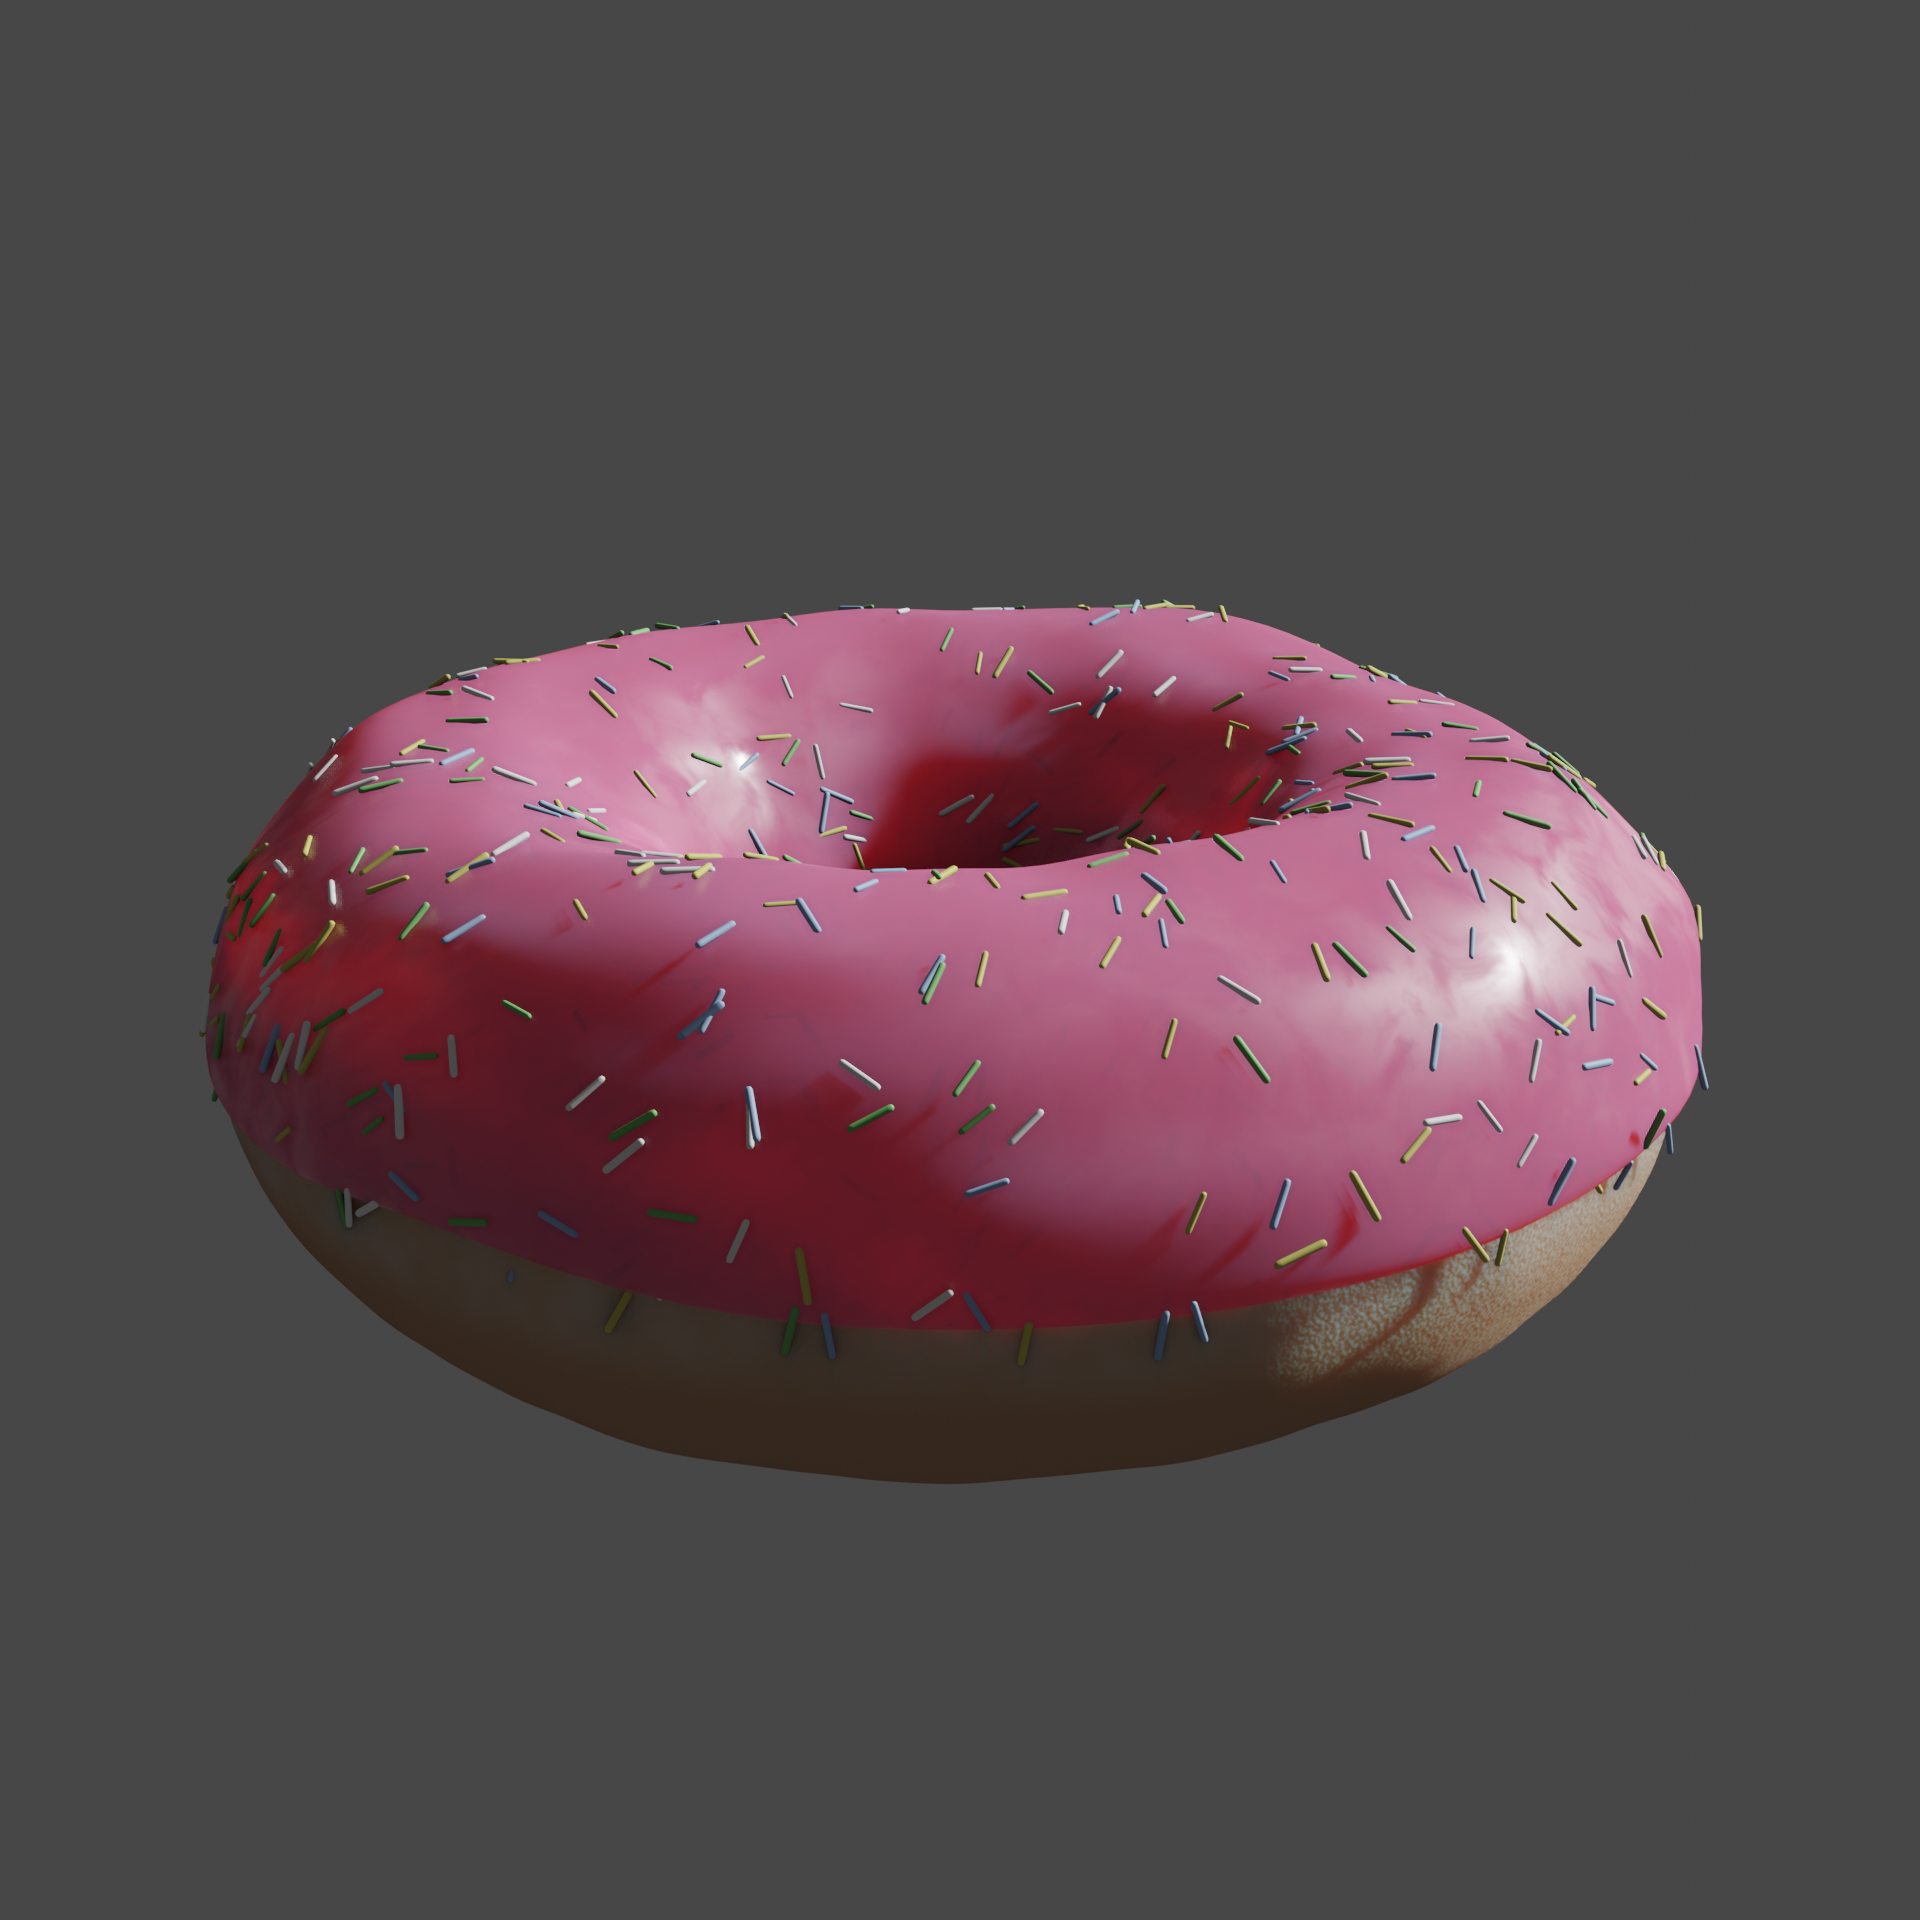 nondestructive donut preview image 4